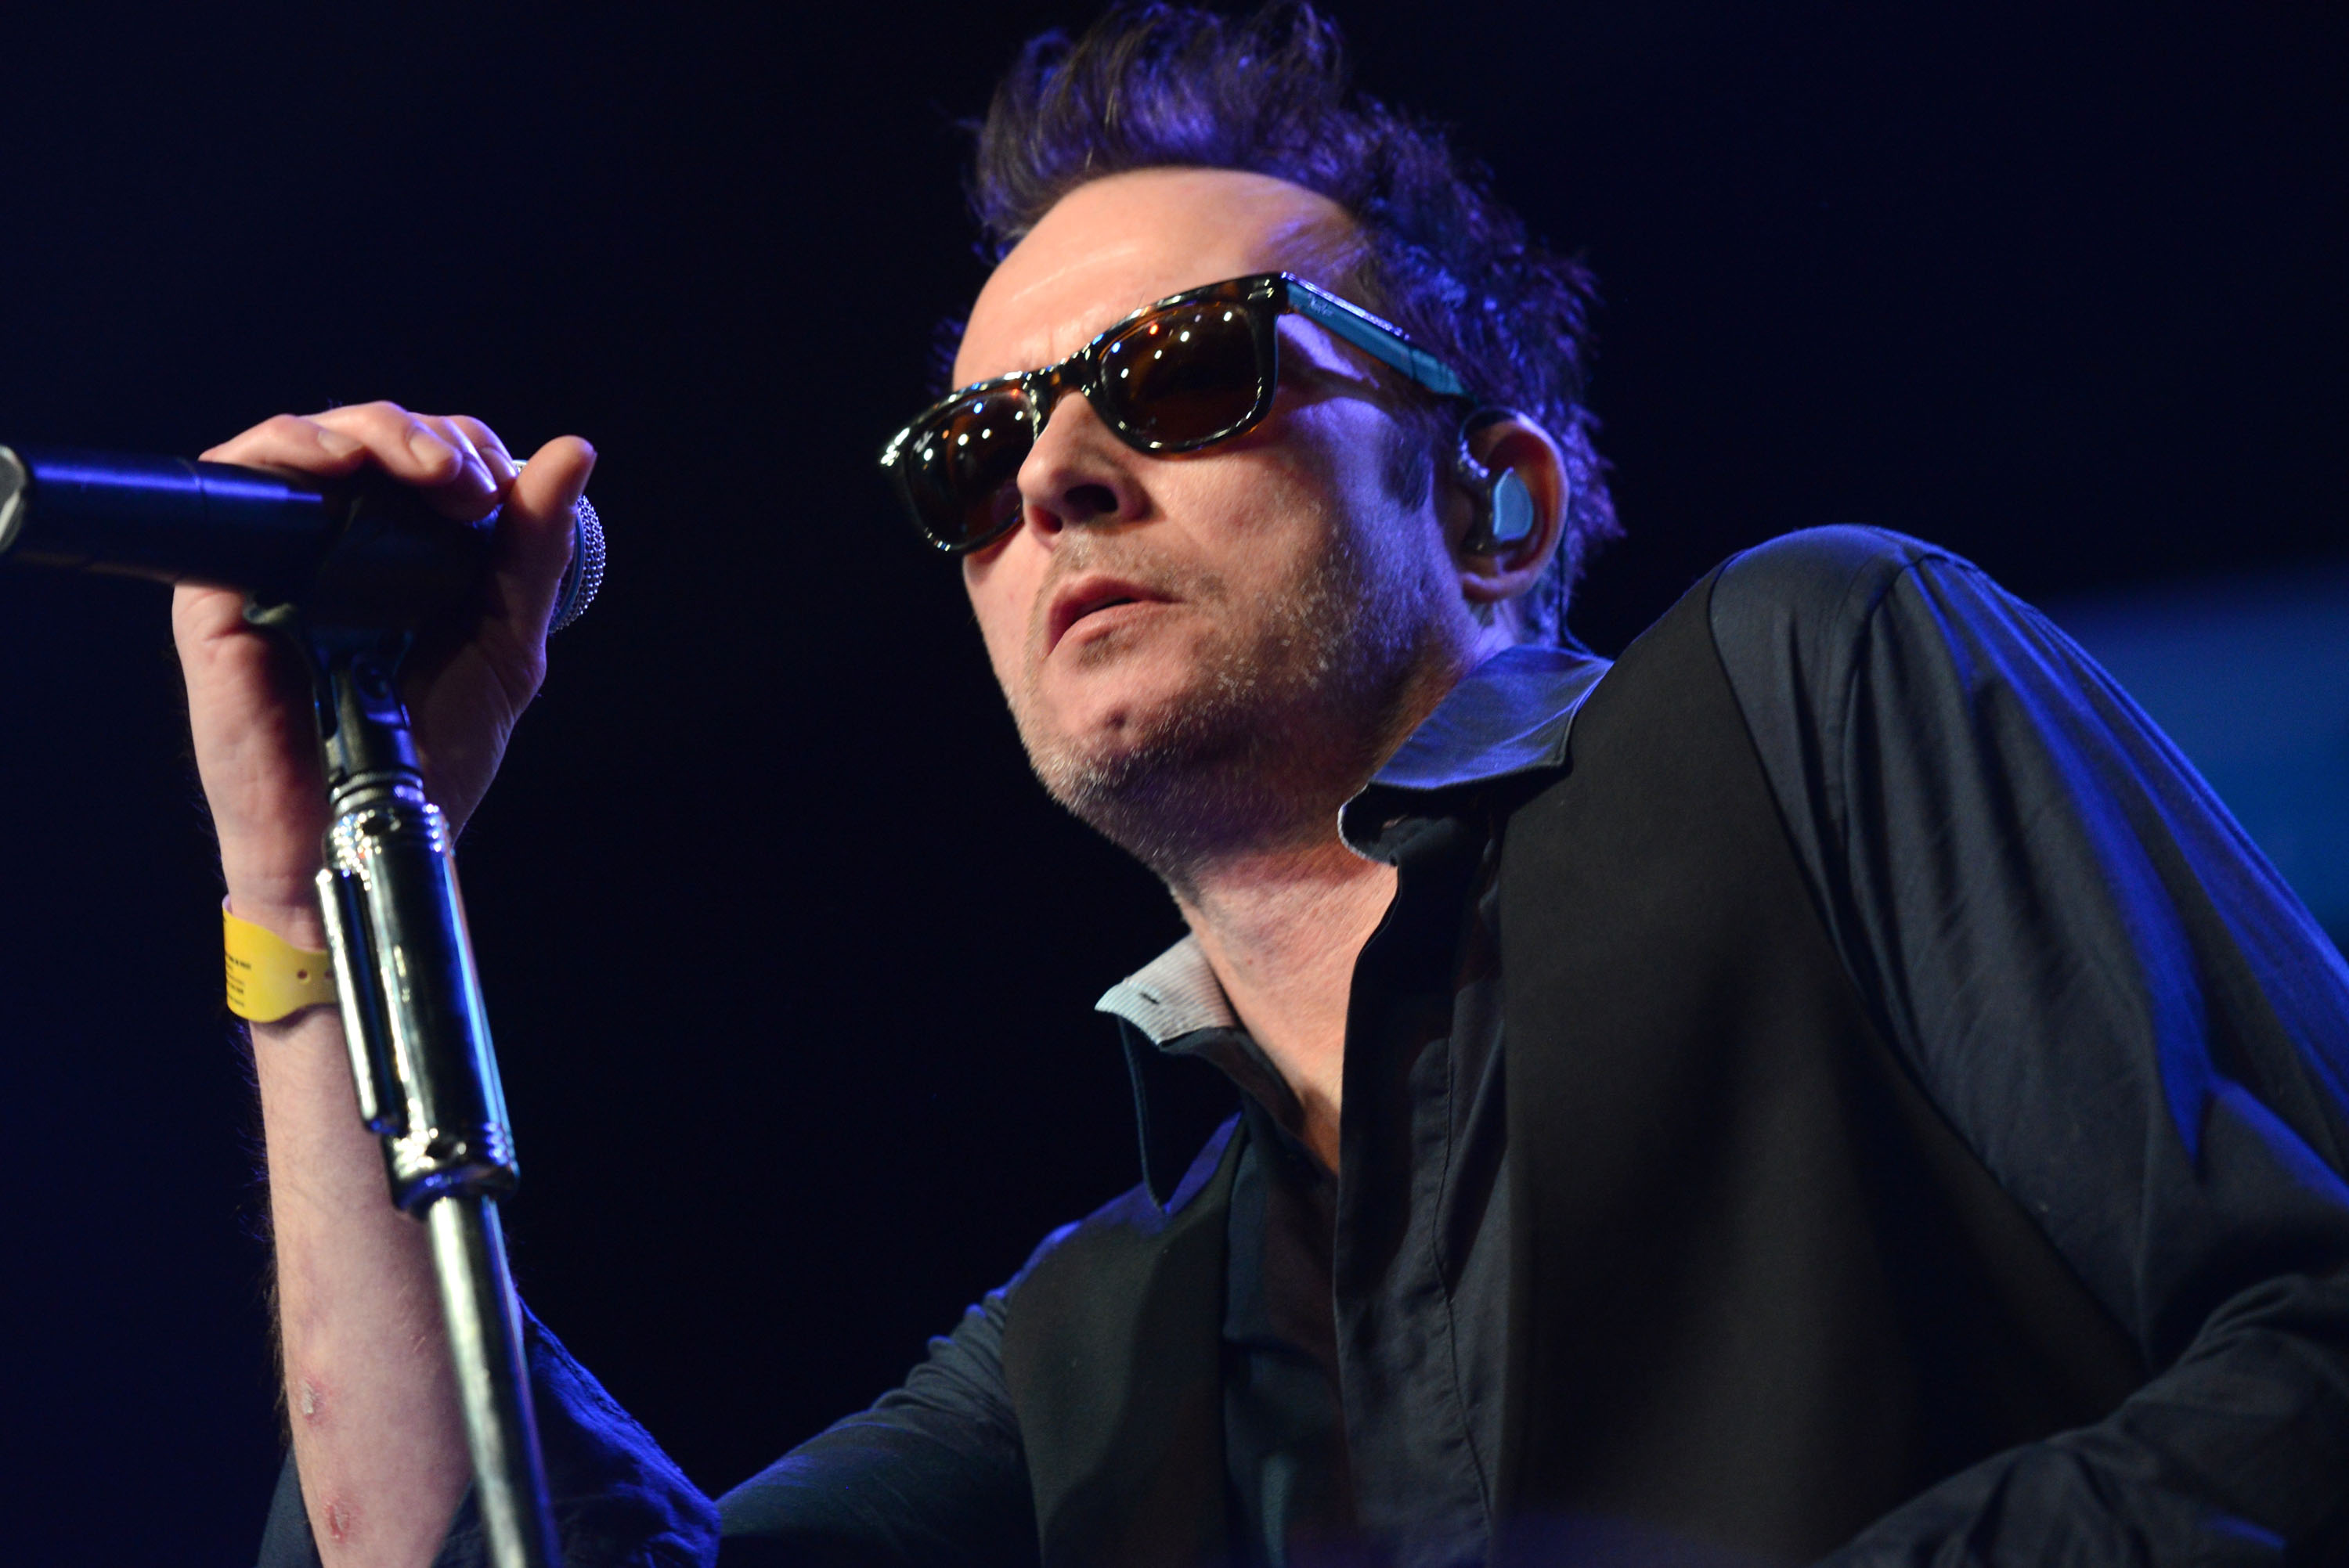 b59d2b91930 Former Stone Temple Pilots singer Scott Weiland is dead at age 48